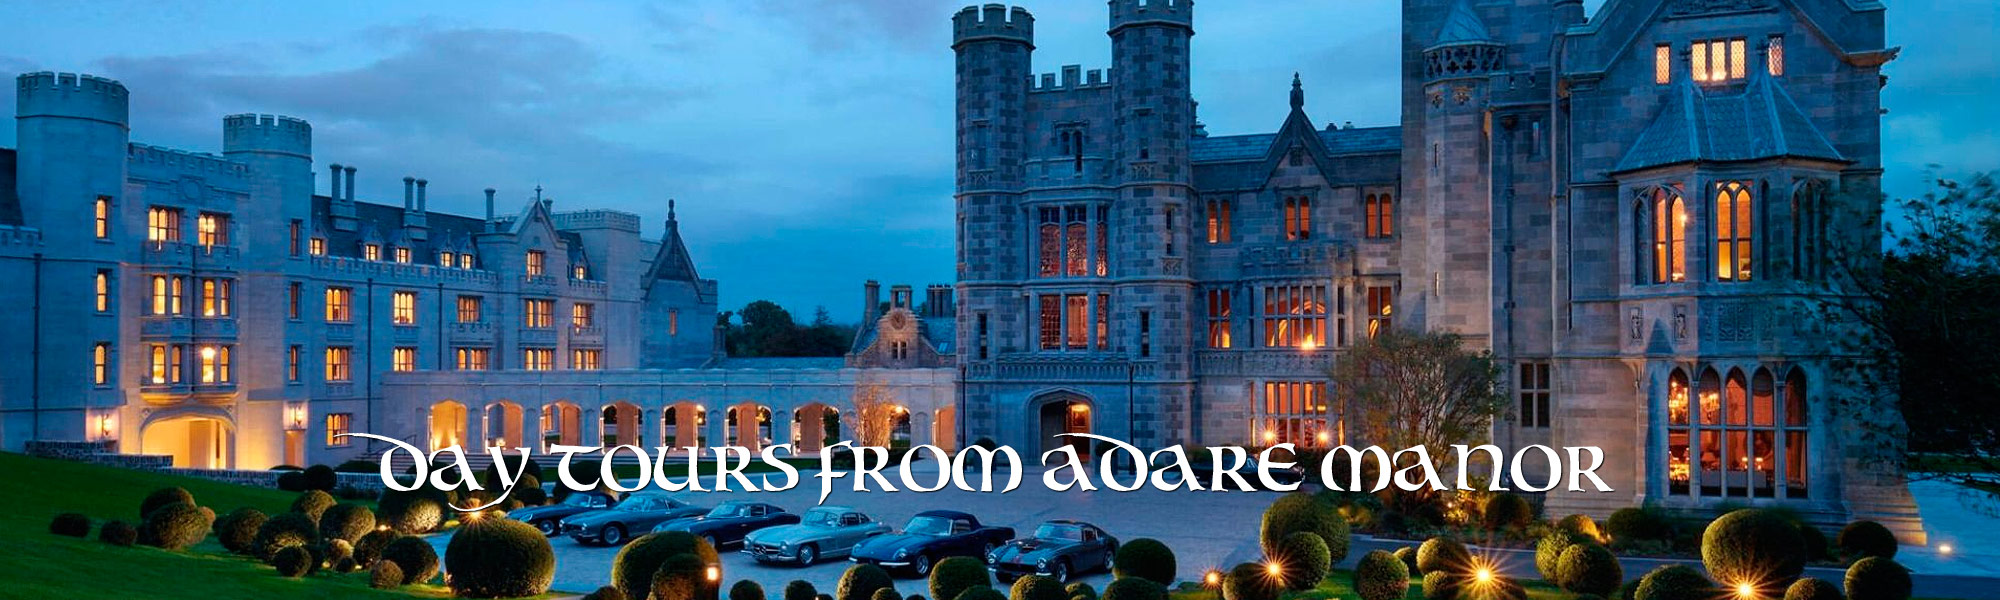 Day tours from Adare Manor